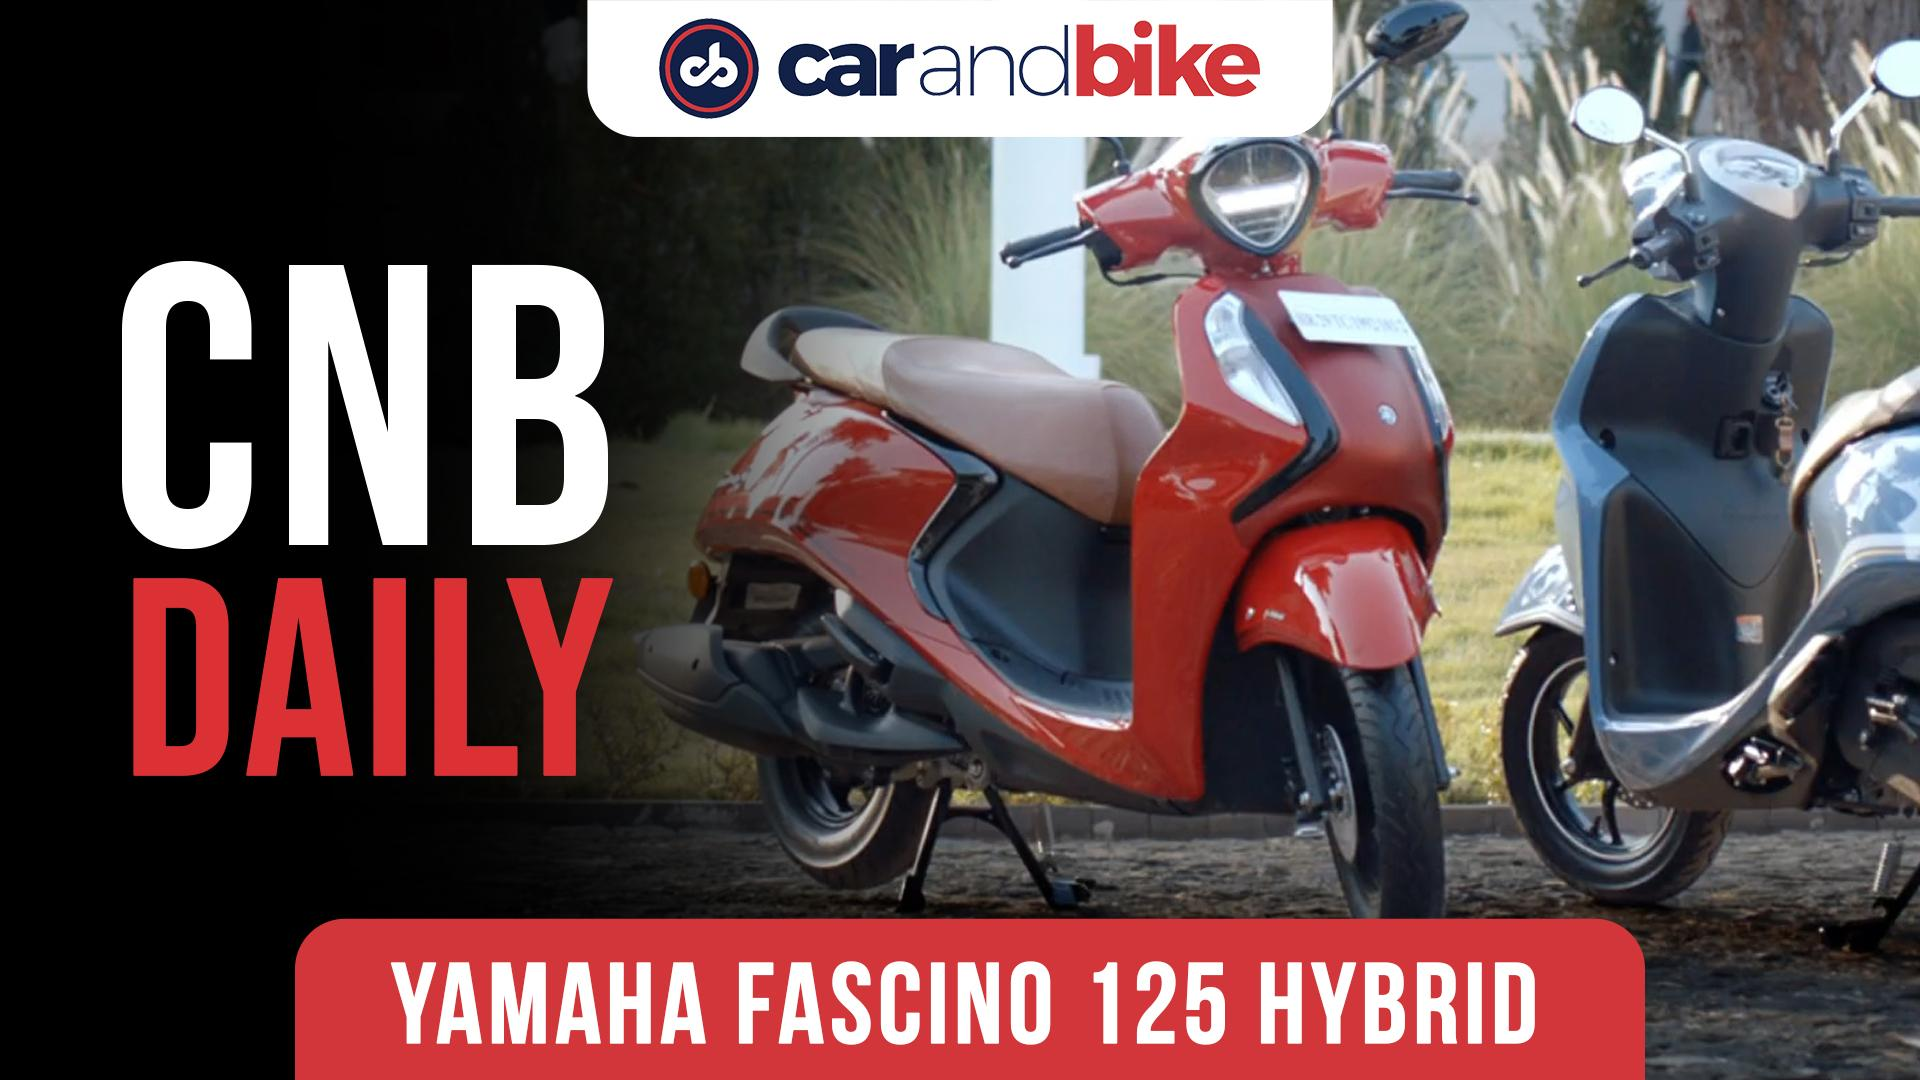 Yamaha Fascino 125 FI Hybrid Launched In India